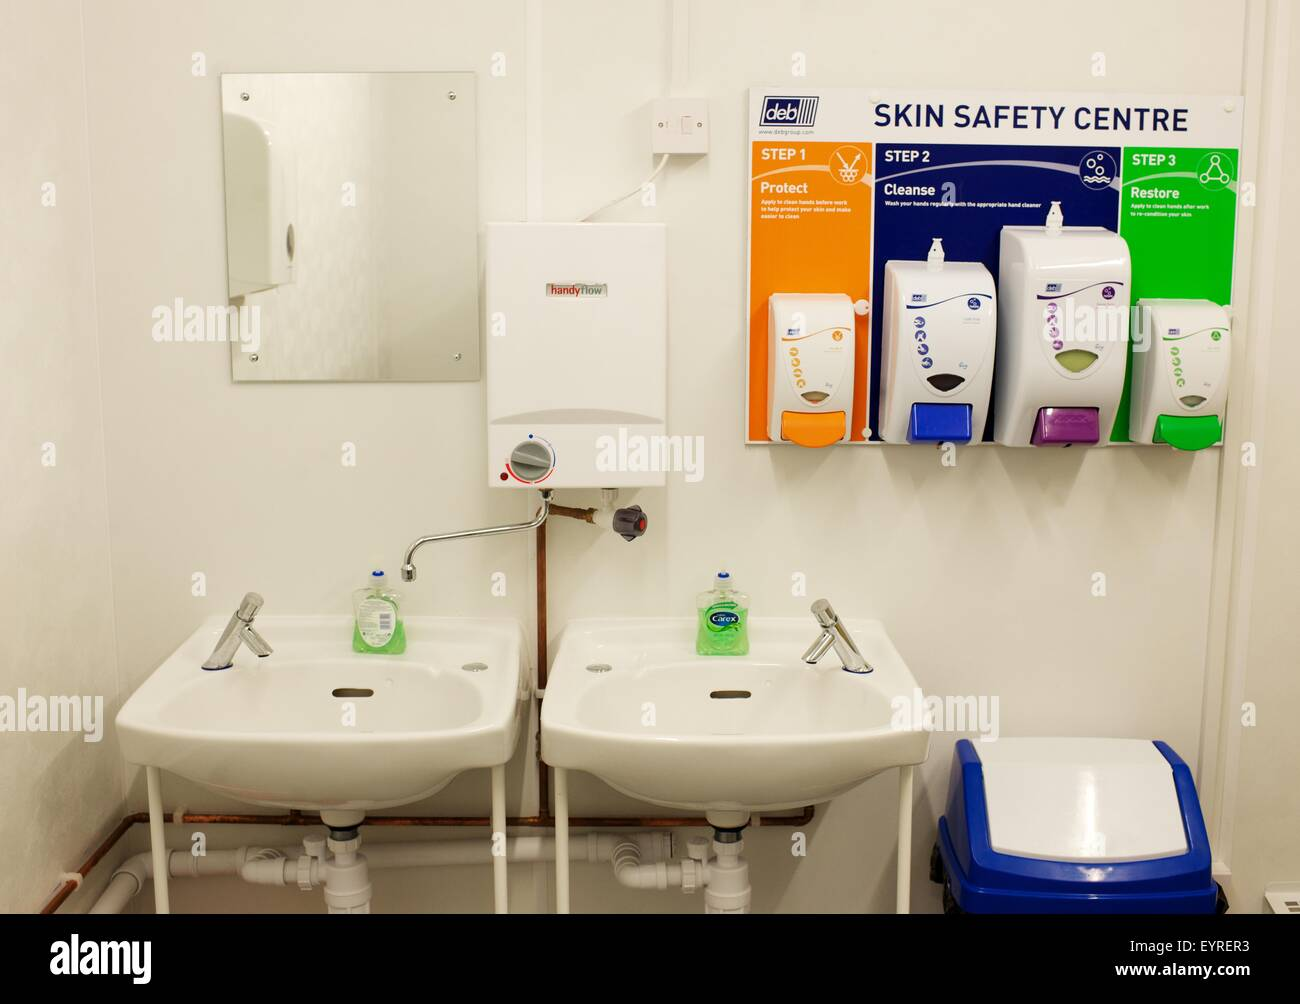 skin safety centre on a building site - Stock Image